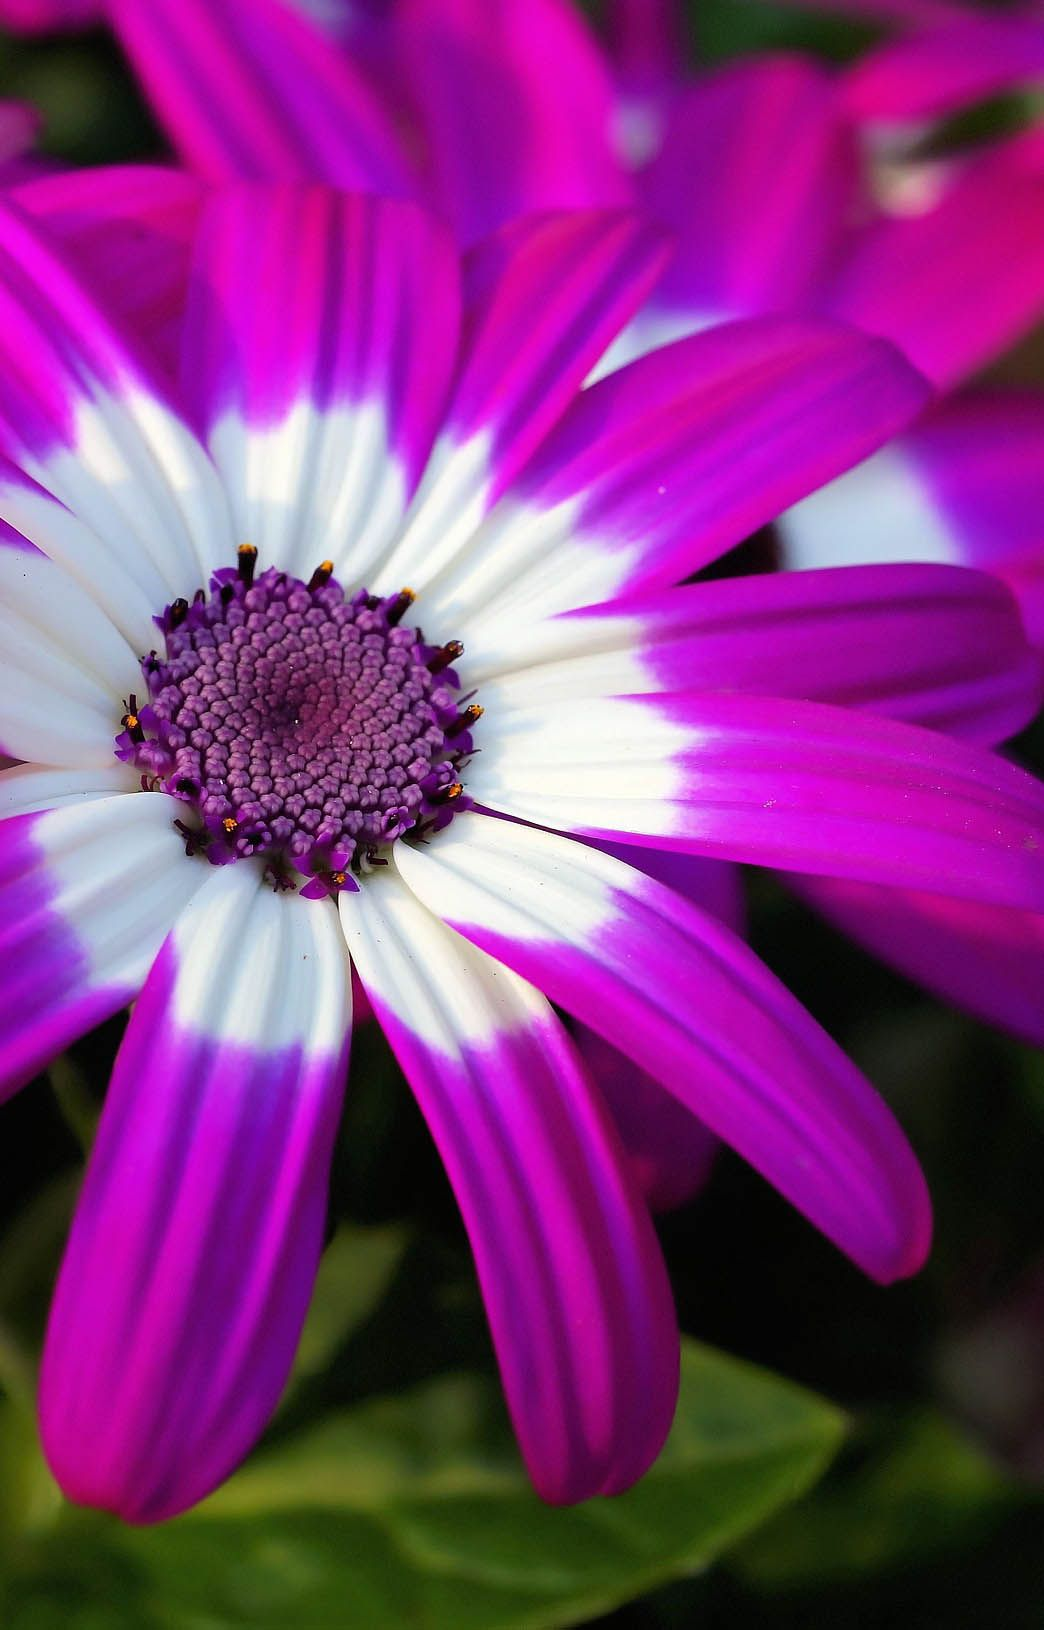 The 35 best flower photos beautiful flowers images flower images i brought together the most beautiful flowers here you will find the 35 the best flower photos in this gallery flowers have great importance for the life izmirmasajfo Choice Image